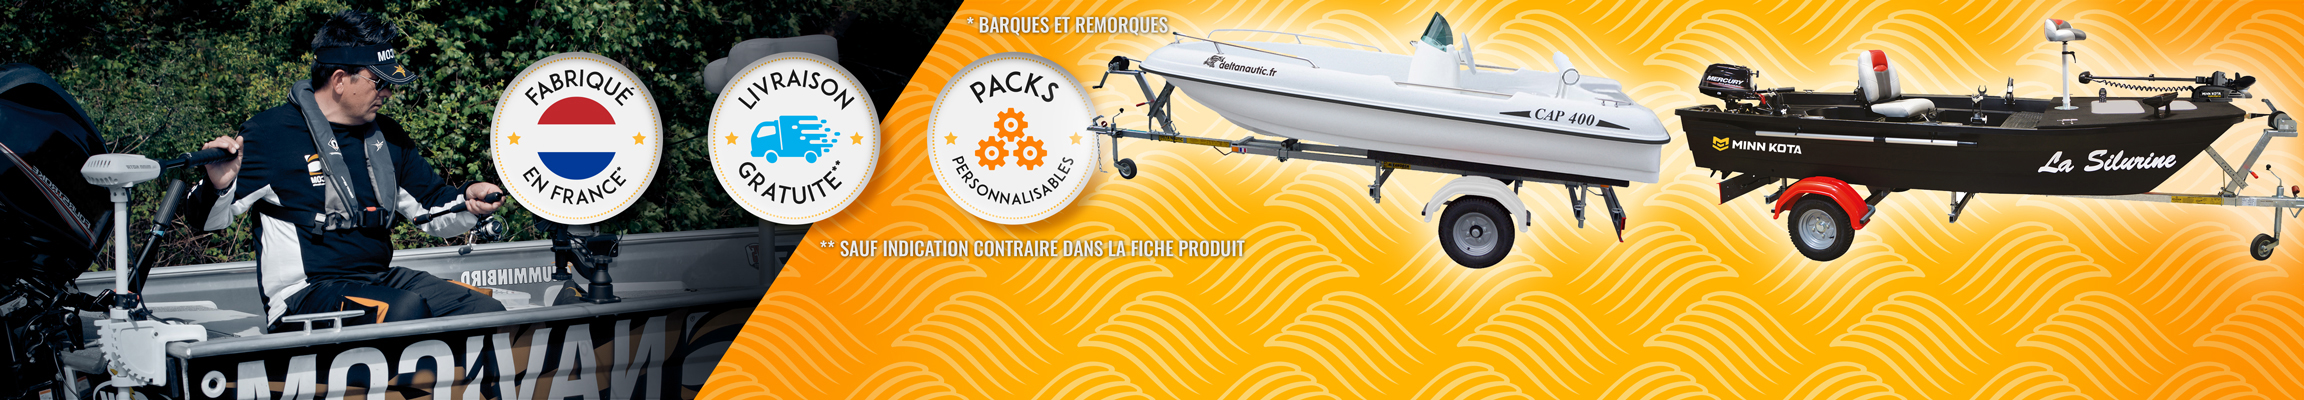 Packs Barques